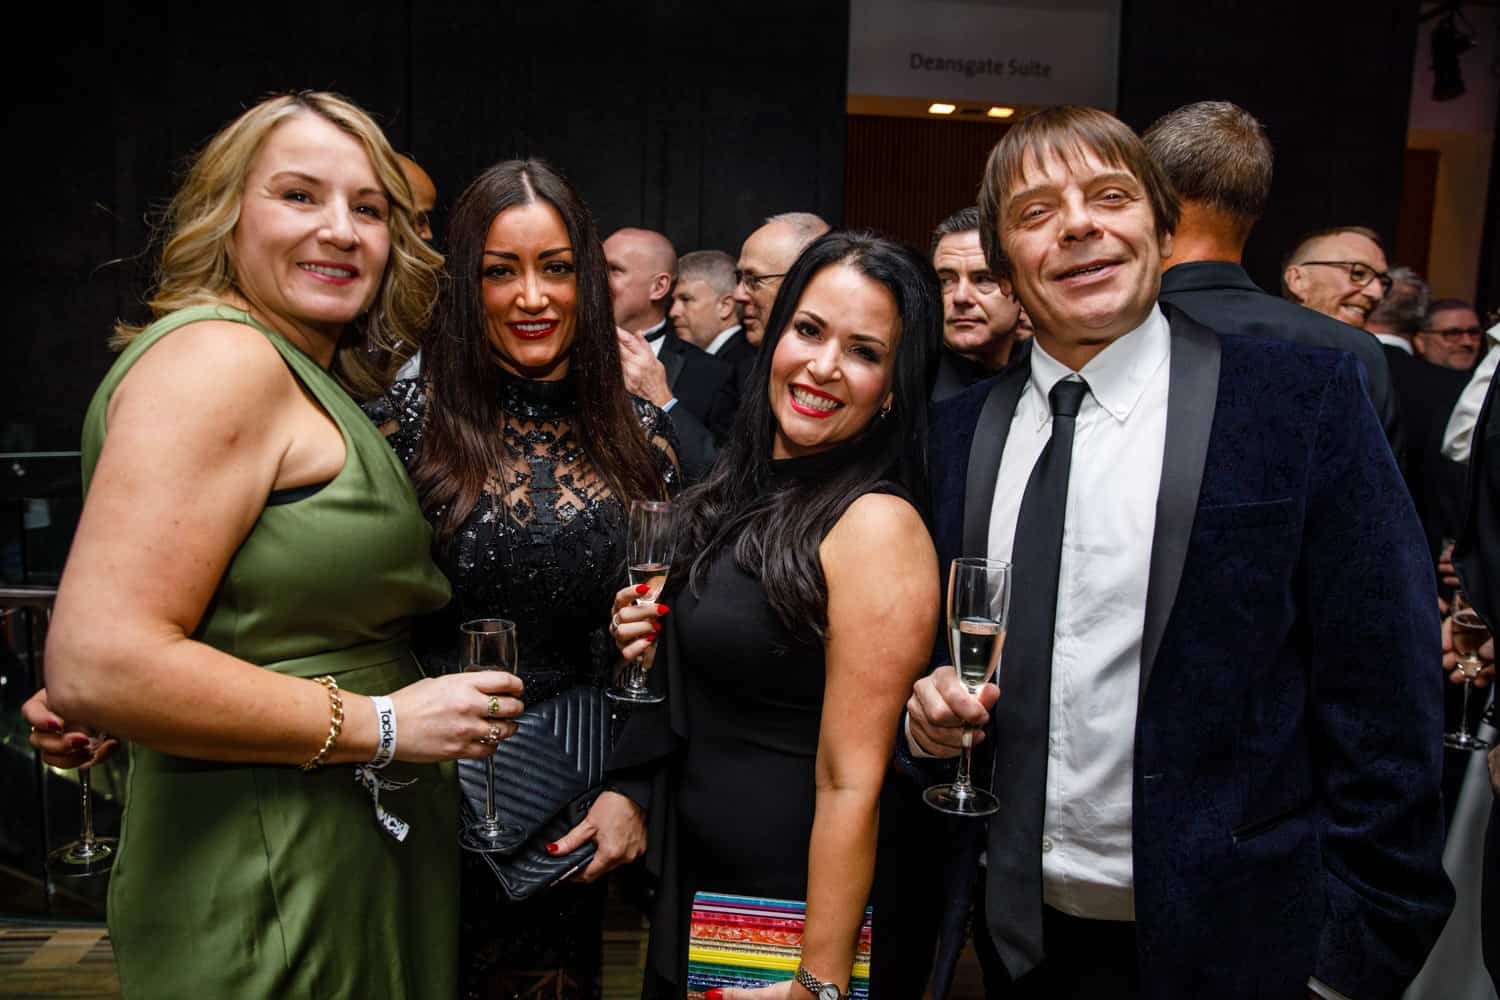 celebrity event at the hilton manchester